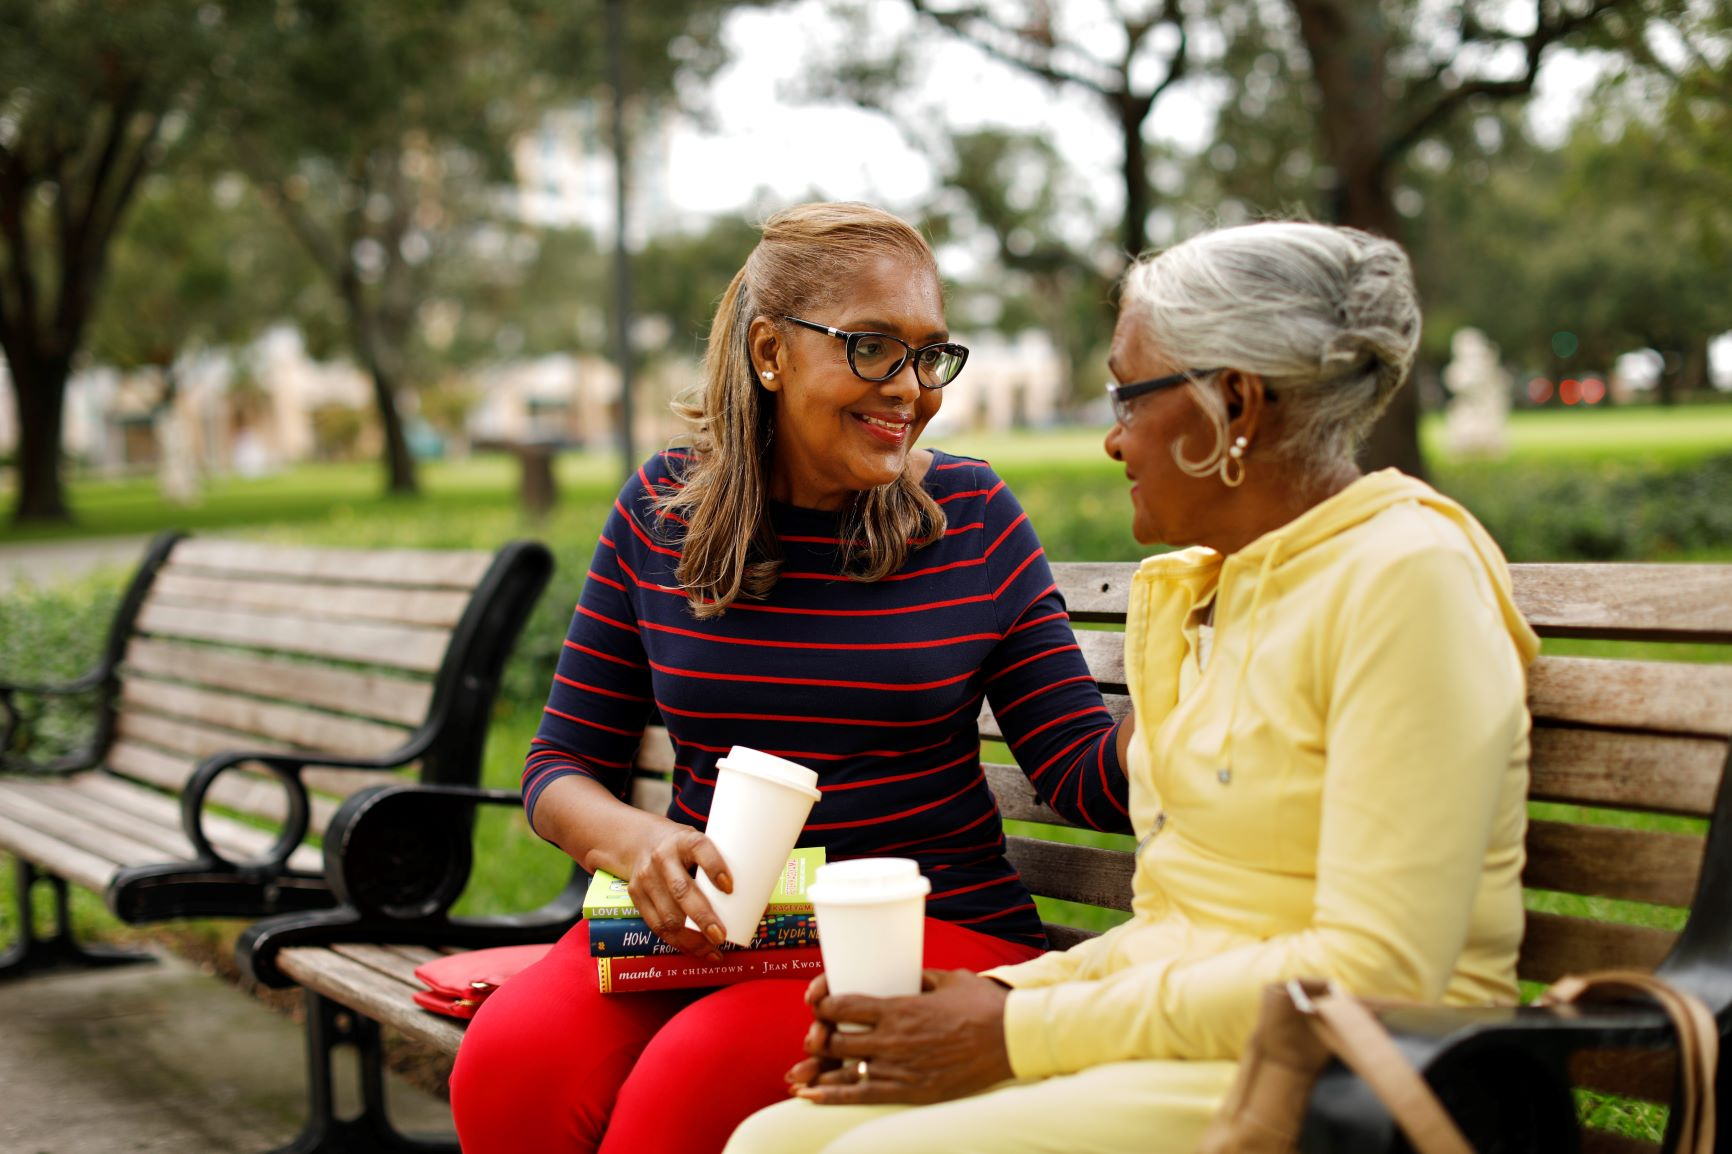 Tampa Bay Cares for Caregivers